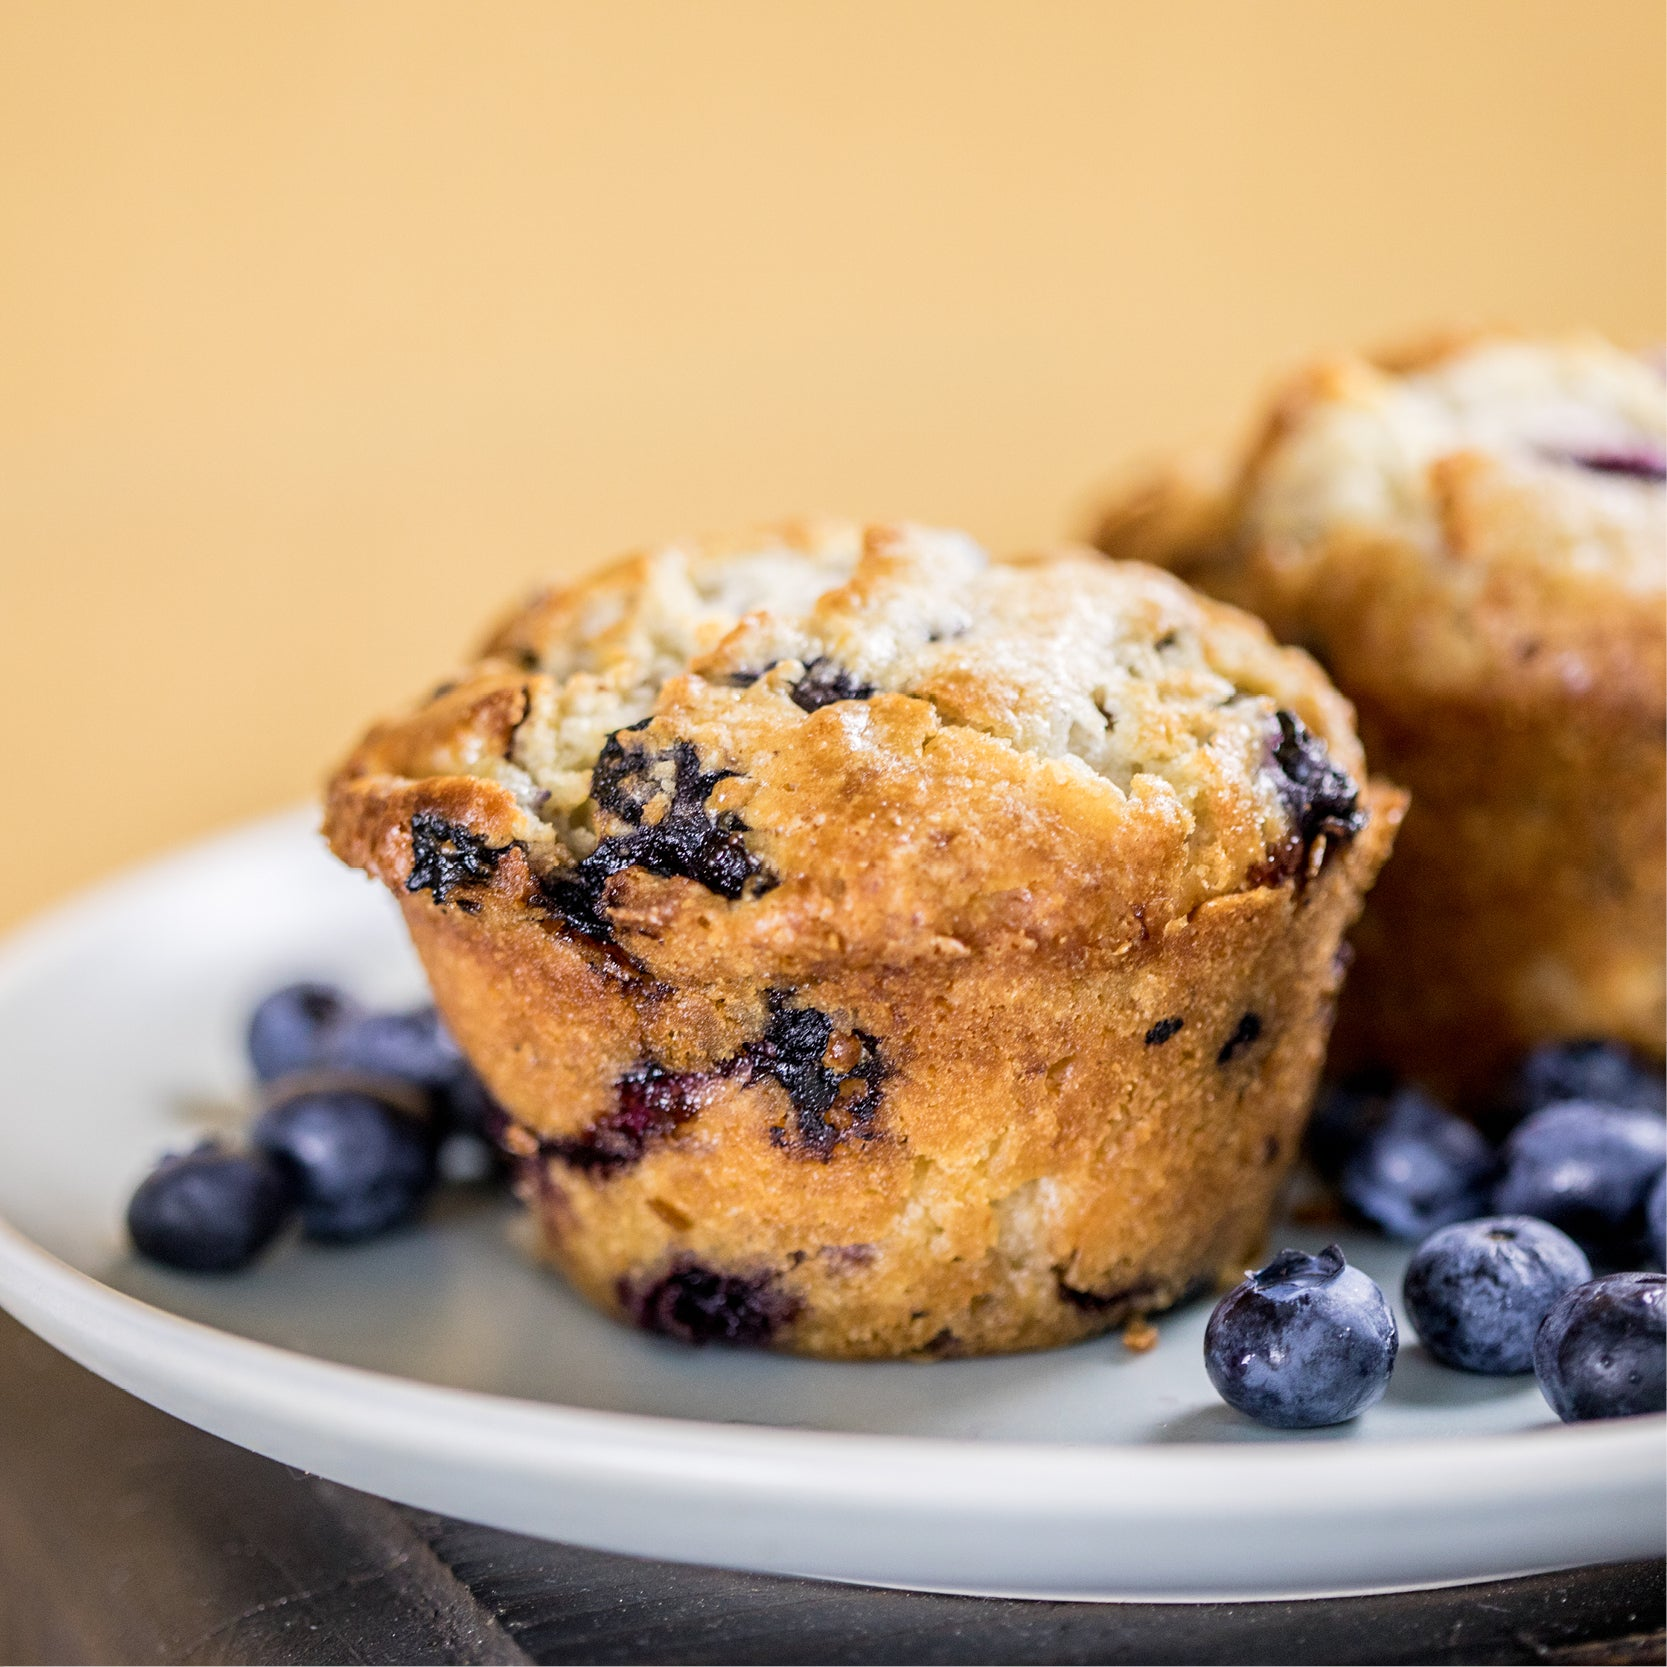 Big Blueberry Muffin